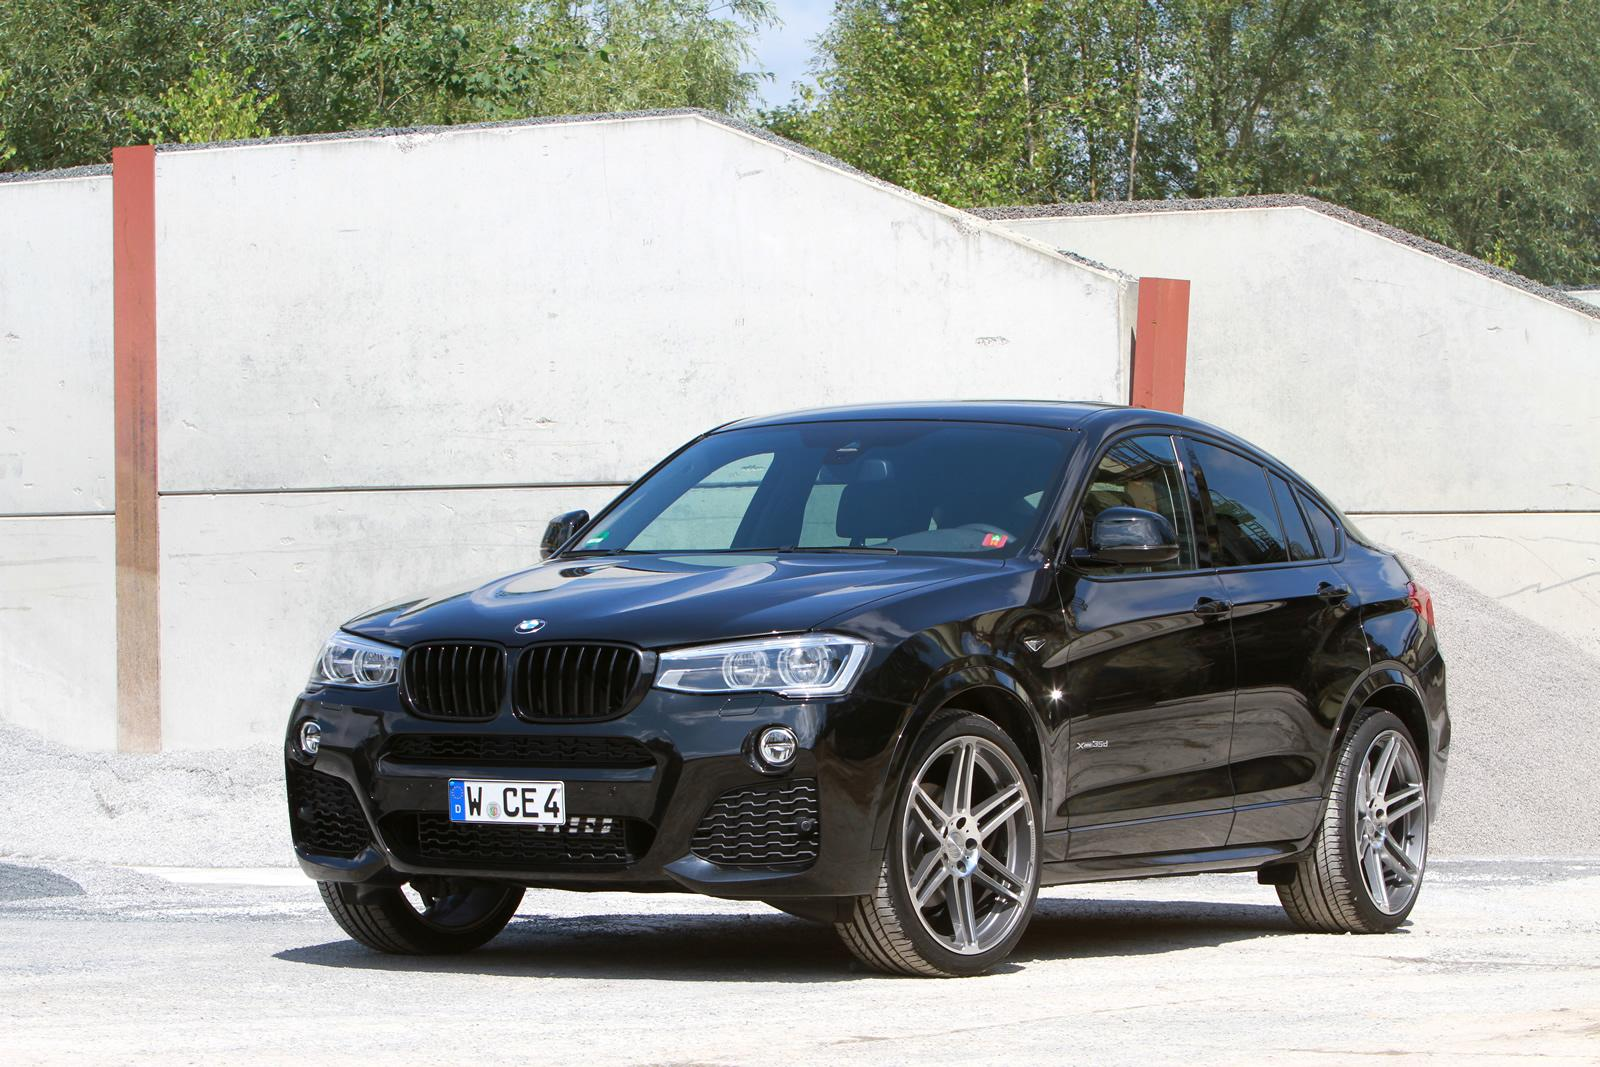 BMW X4 xDrive35d 2014 photo - 9